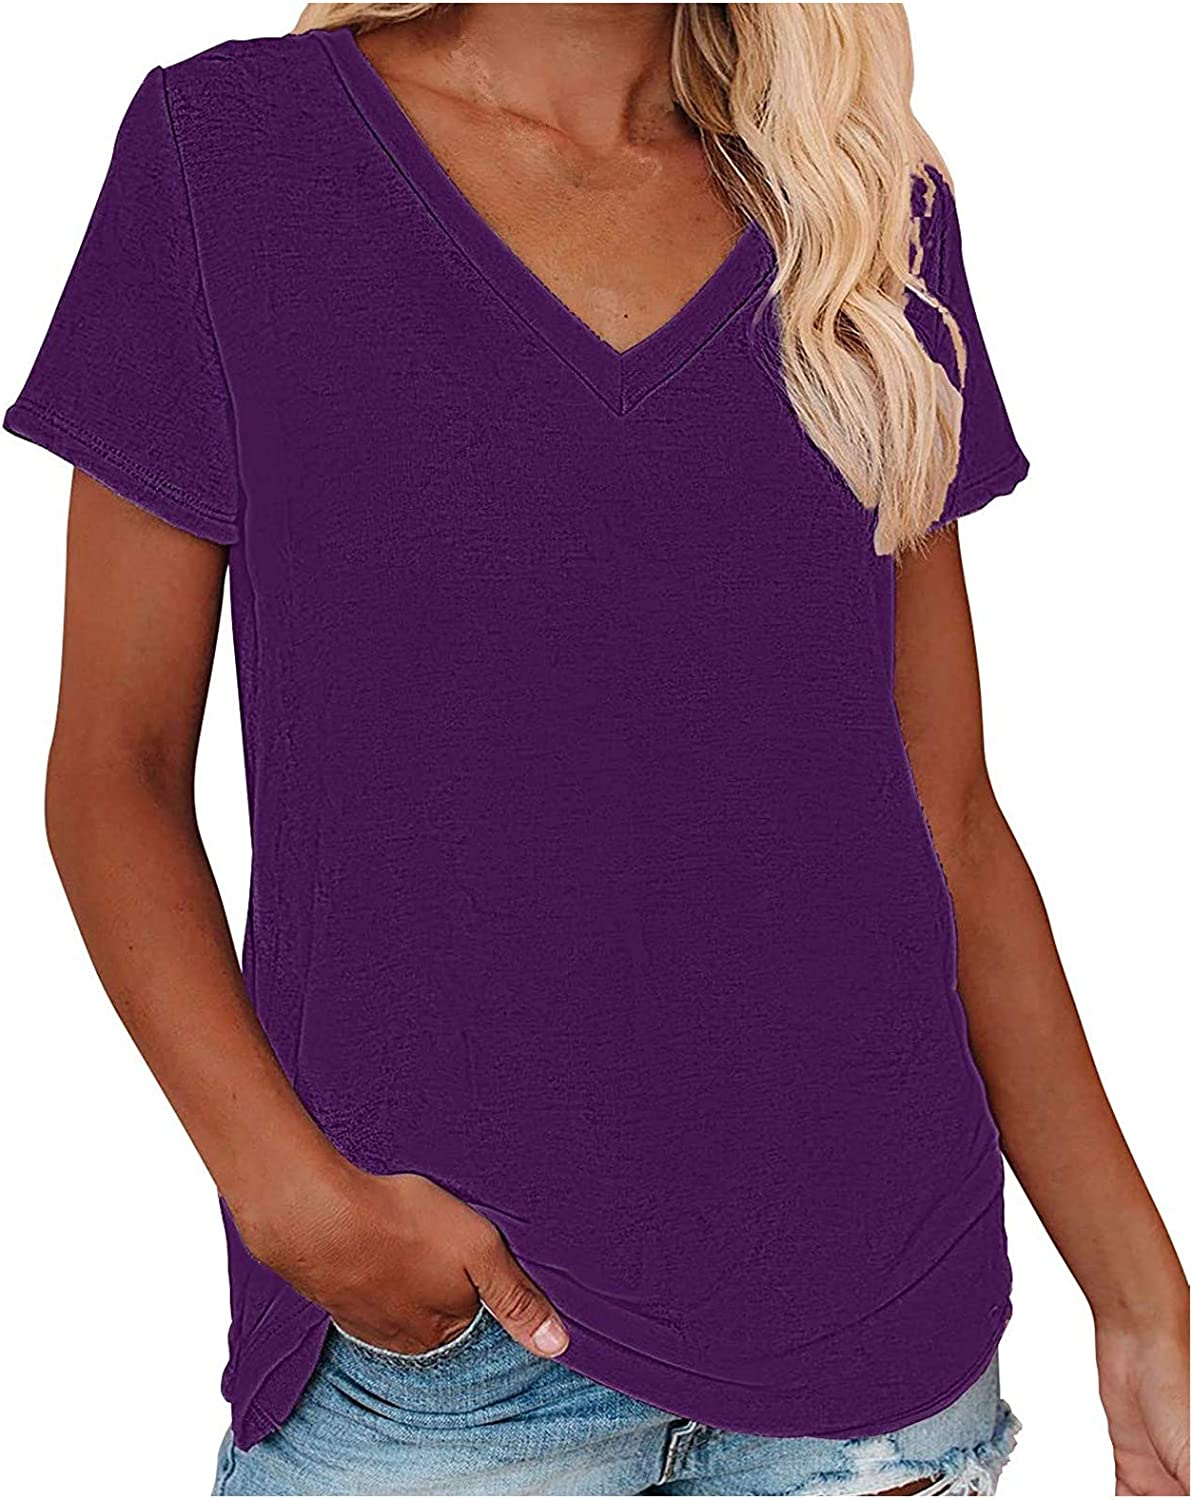 FUNEY Womens Tops Summer Short Sleeve V Neck T Shirts Casual Cozy Loose Fit Workout Tops Tunic Blouses for Women Teen Girls